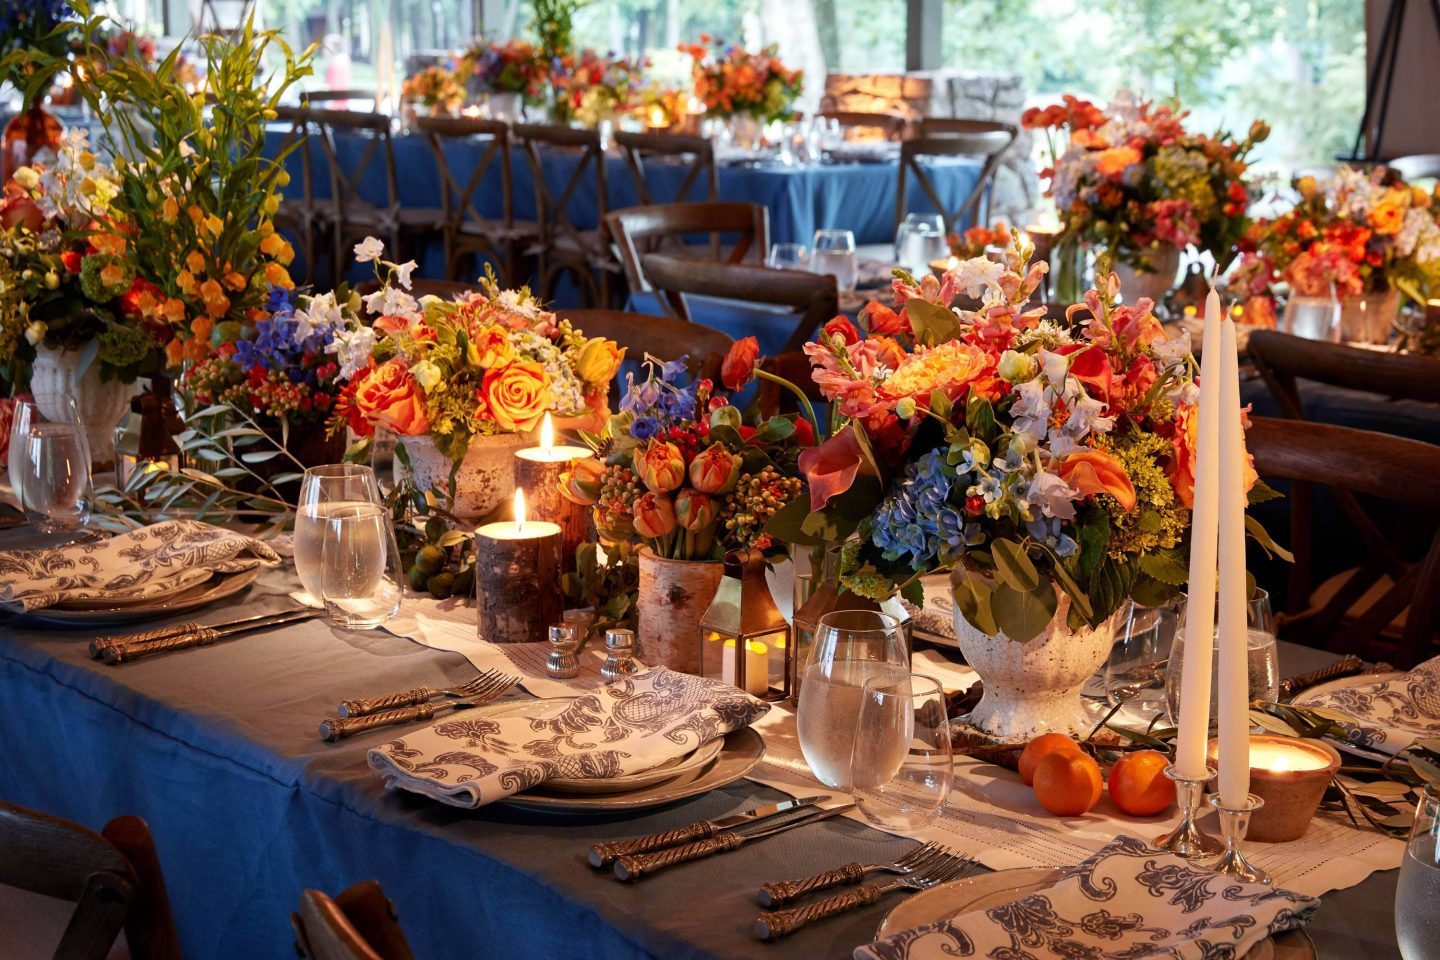 Rustic floral and table decor for the welcome party at this camp-themed wedding weekend at Cedar Lakes Estate in Upstate NY, USA | Photo by Christian Oth Studios